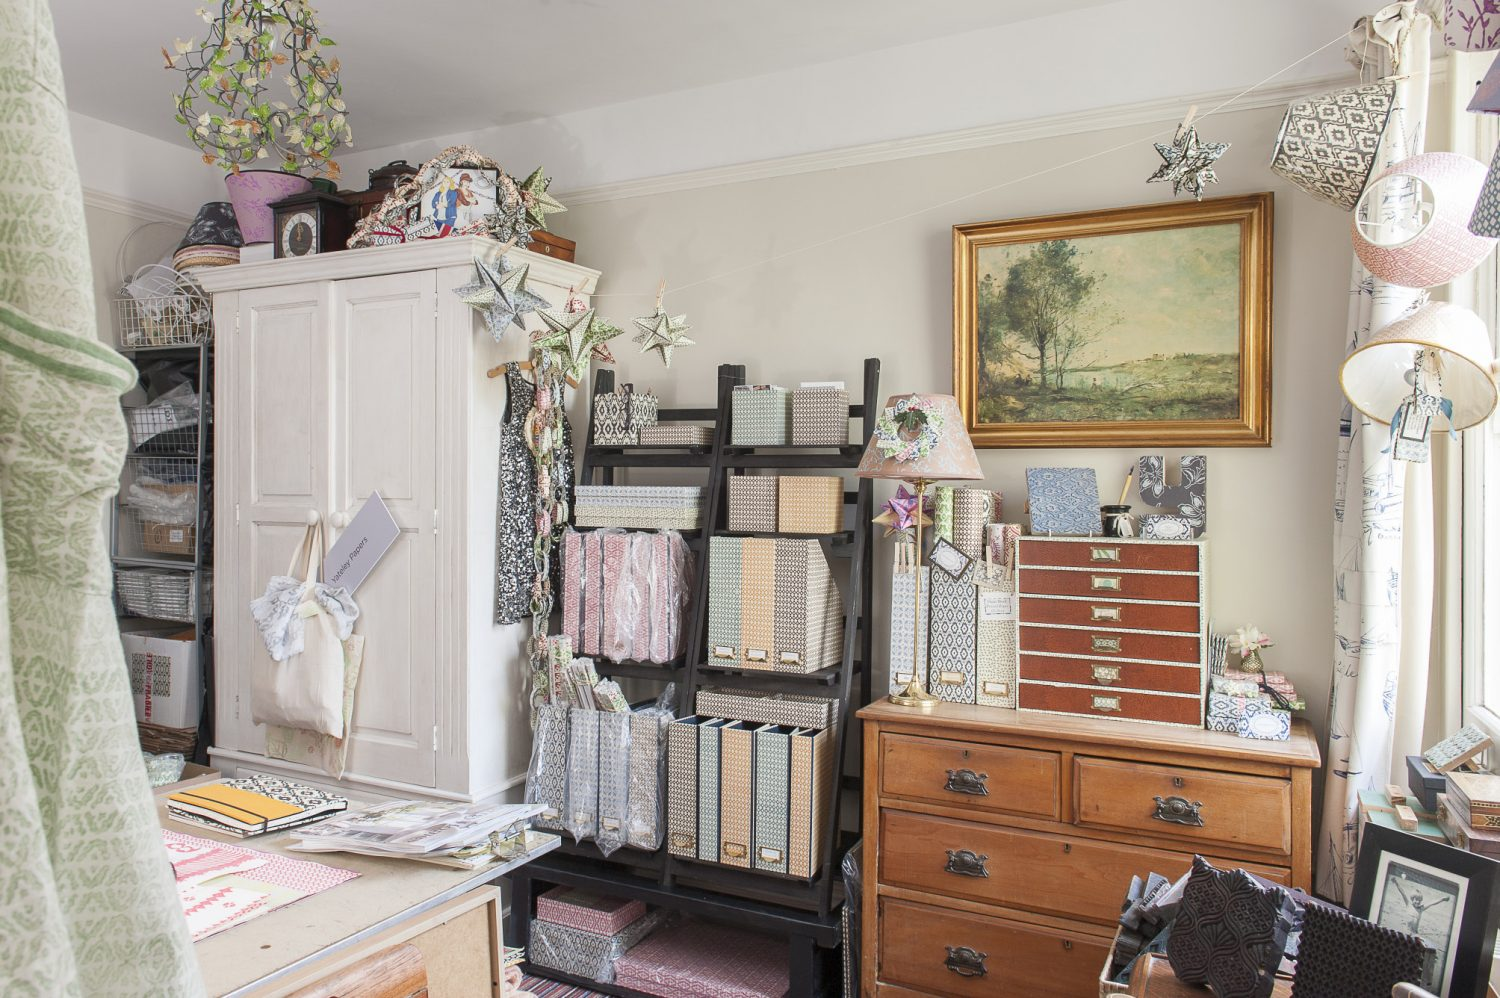 Trudi's workroom shelves are stacked with files in pretty prints, papers and prototypes